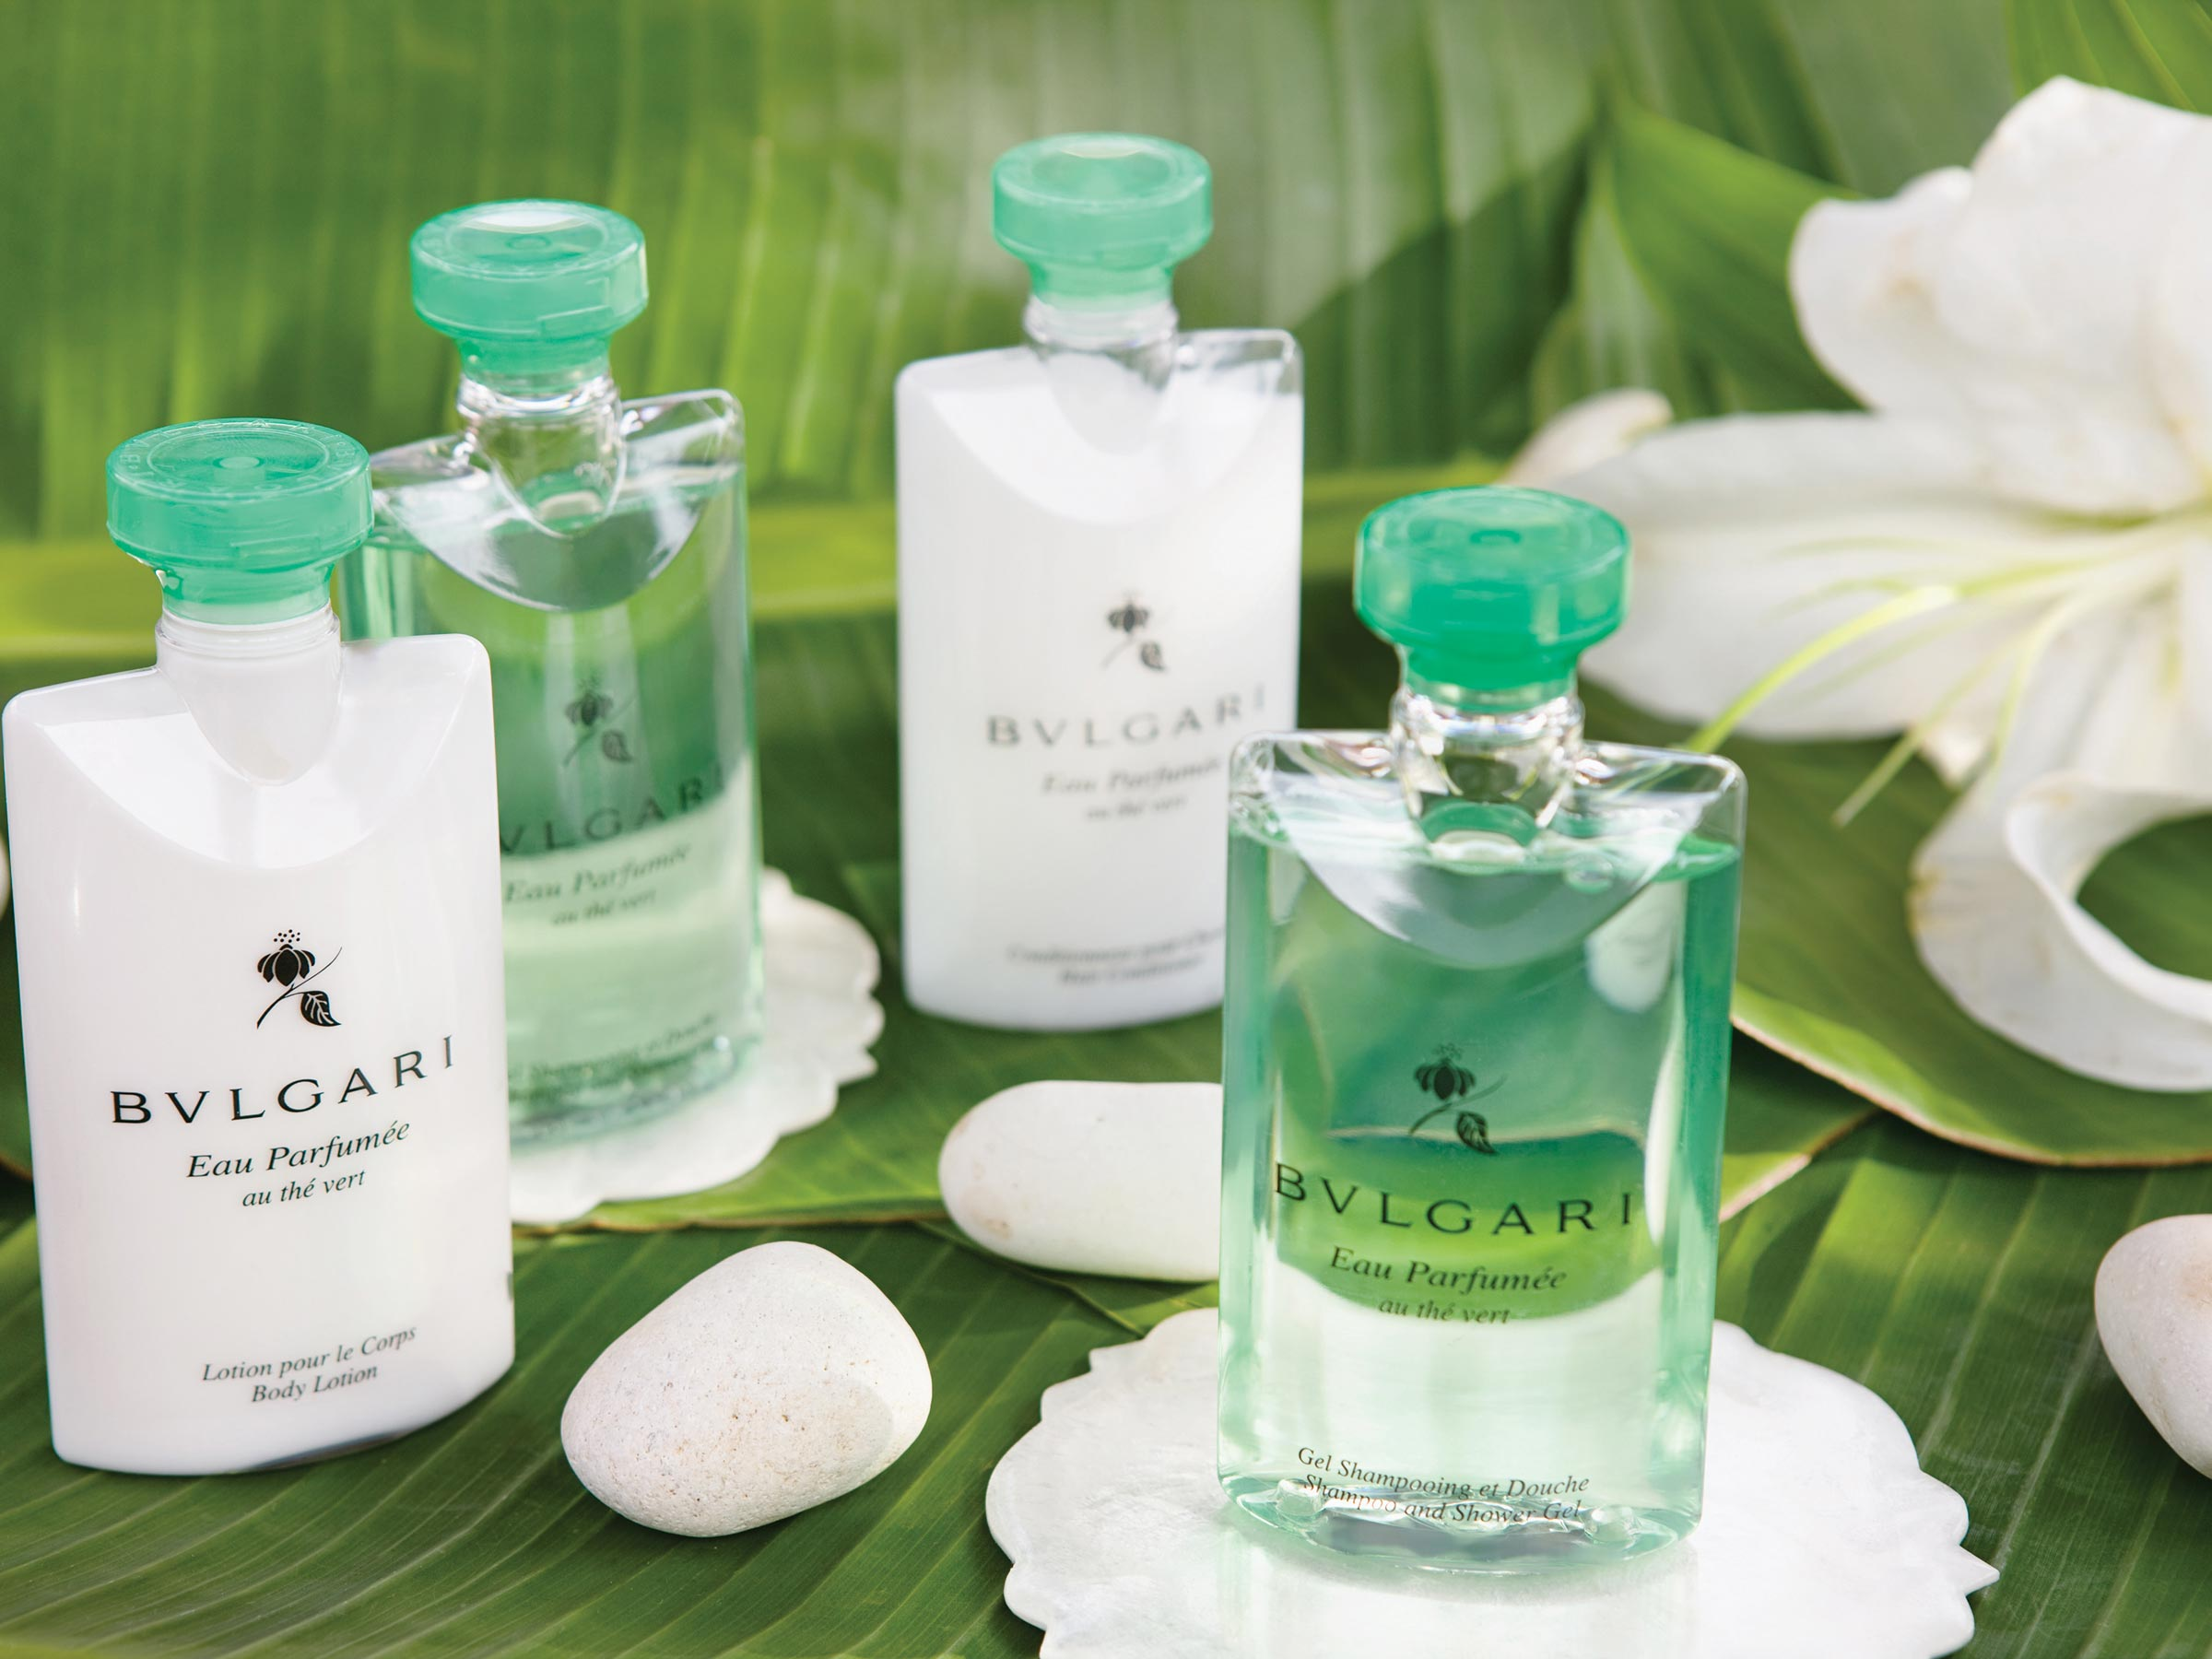 Bvlgari Amenities at our All Inclusive Family Resort